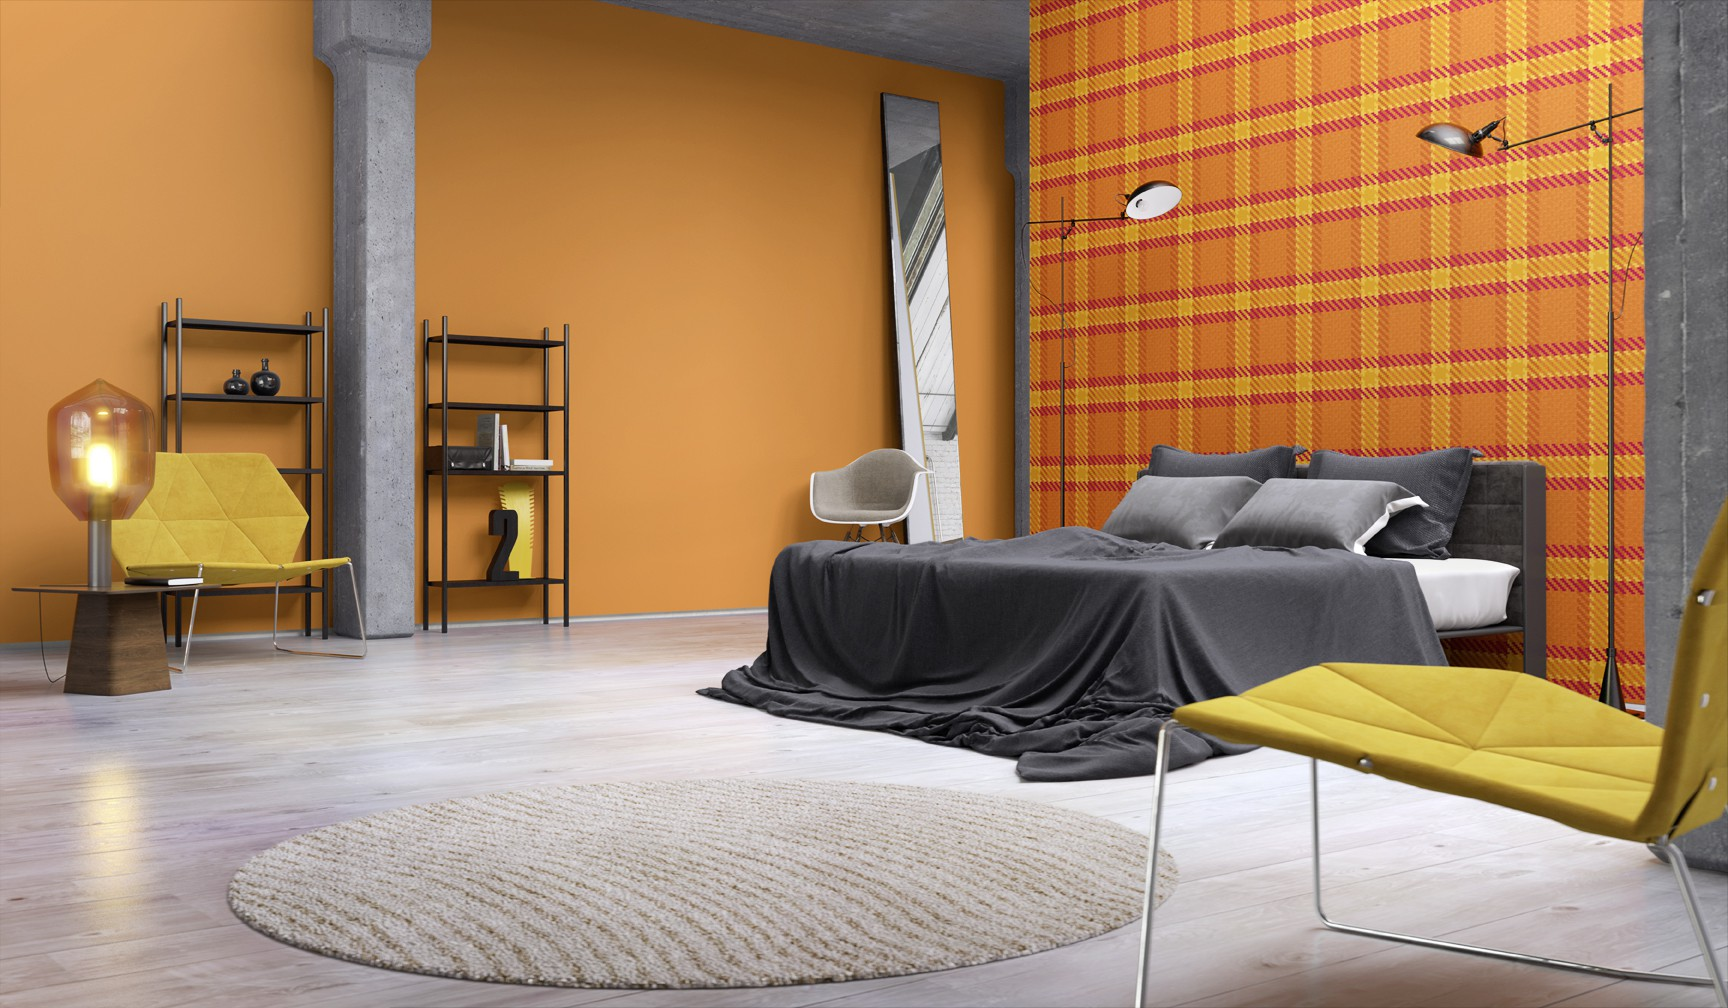 funky flair tapete rasch vliestapete modern 721669 kariert orange gelb. Black Bedroom Furniture Sets. Home Design Ideas